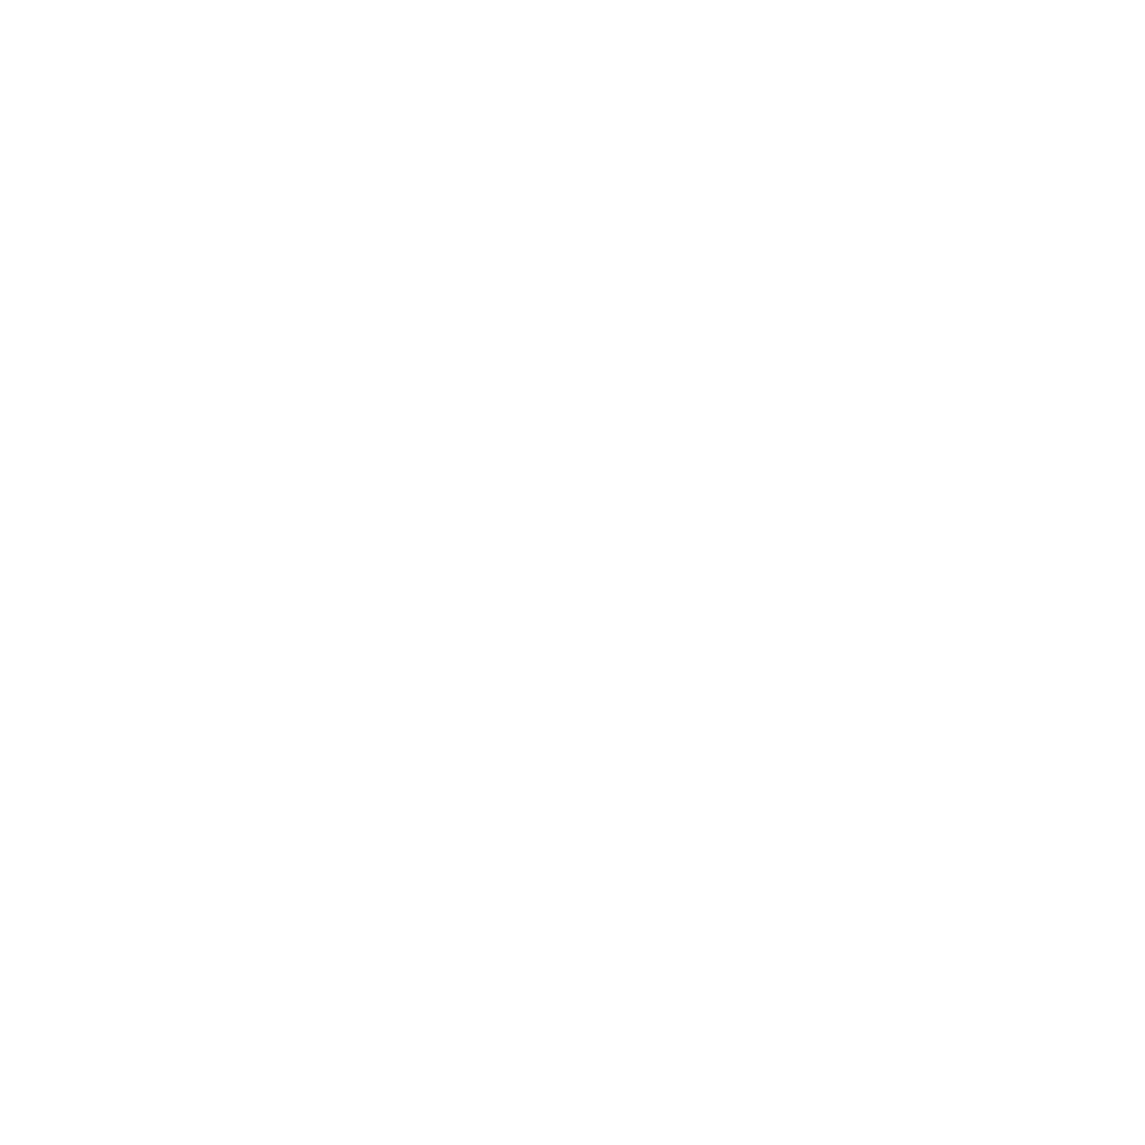 Video Production Services Icon for the Best Web Design in Nashville TN, Horton Group who also provides Nashville SEO, Inbound Marketing and Web Support.